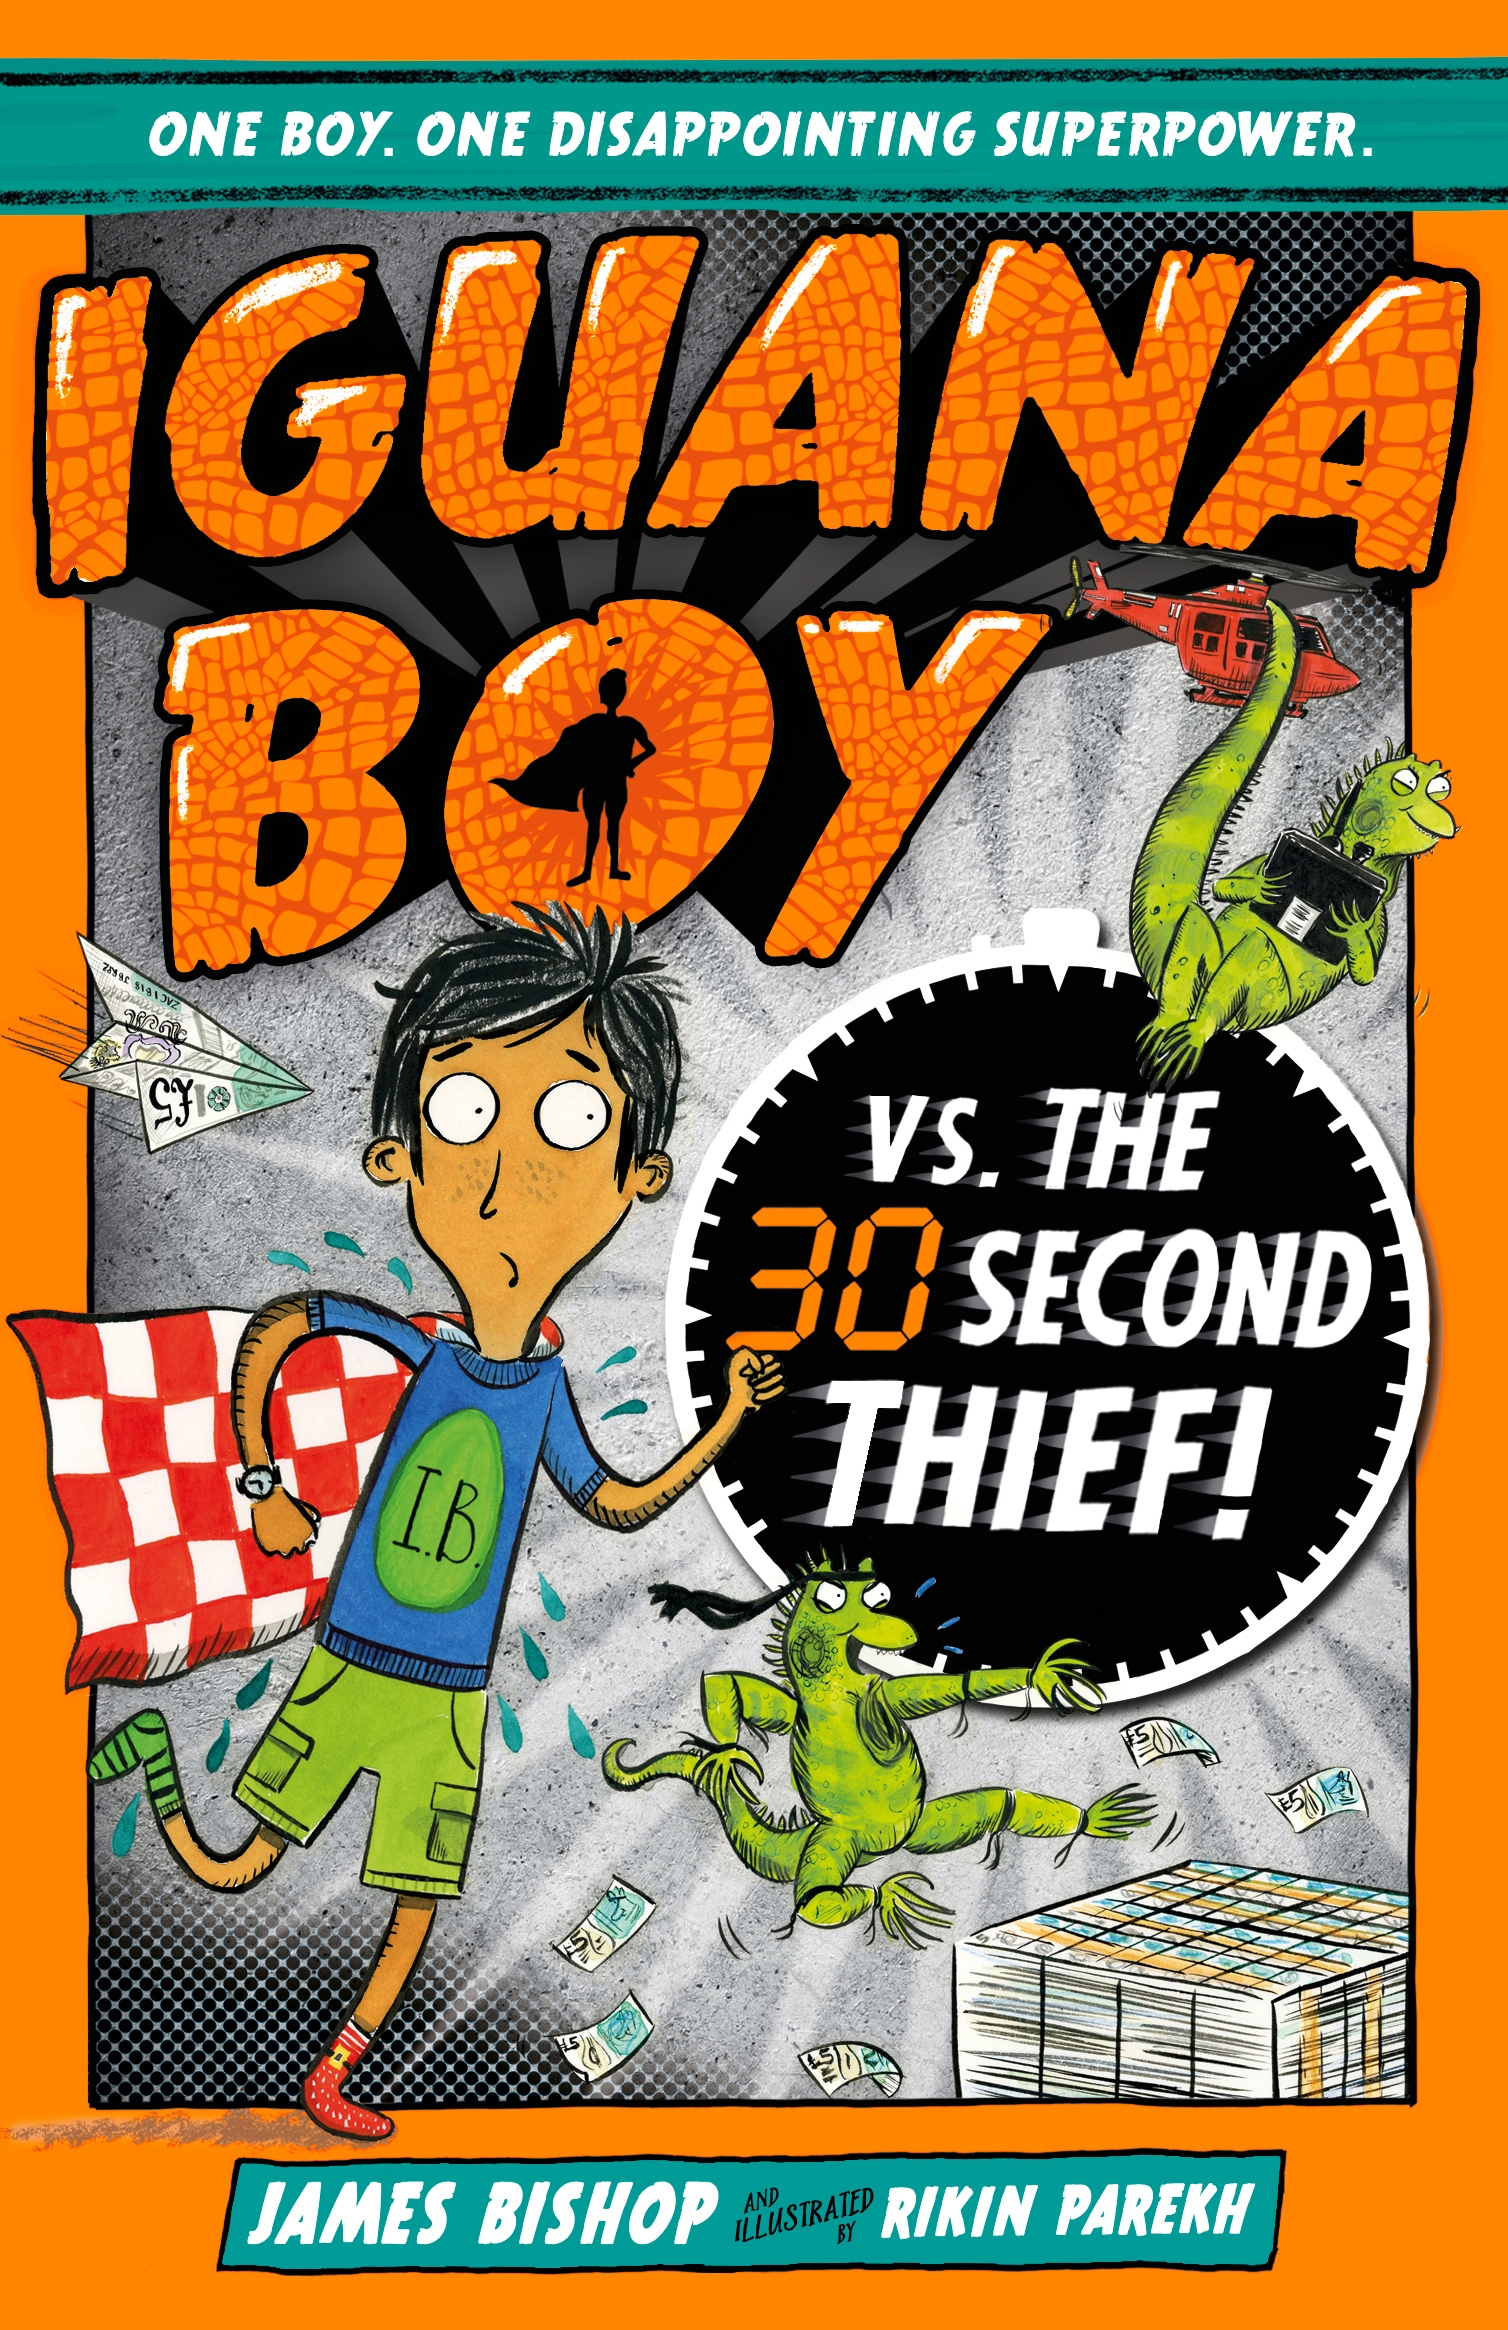 Iguana Boy Saves the World: In 30 Seconds or Less!